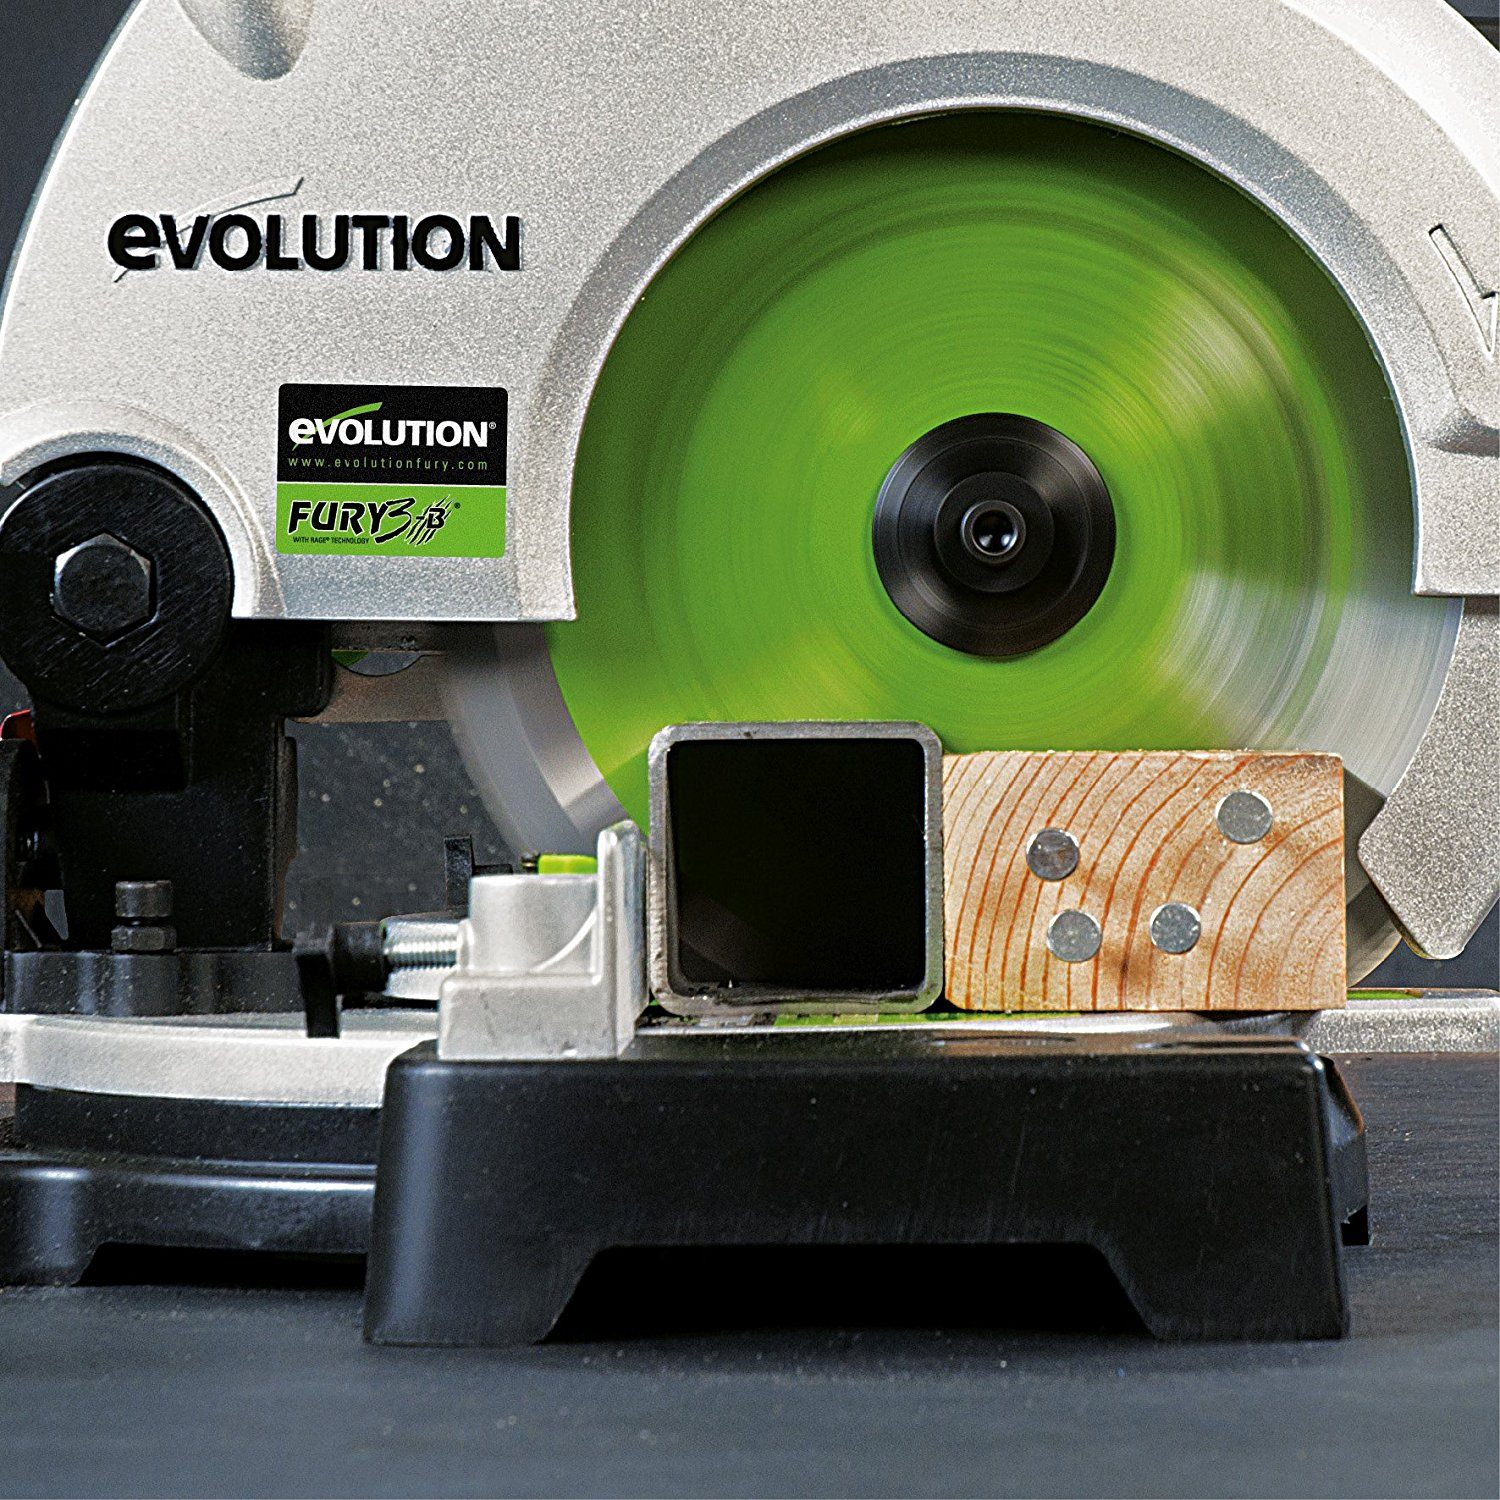 evolution fury 3b compound mitre saw